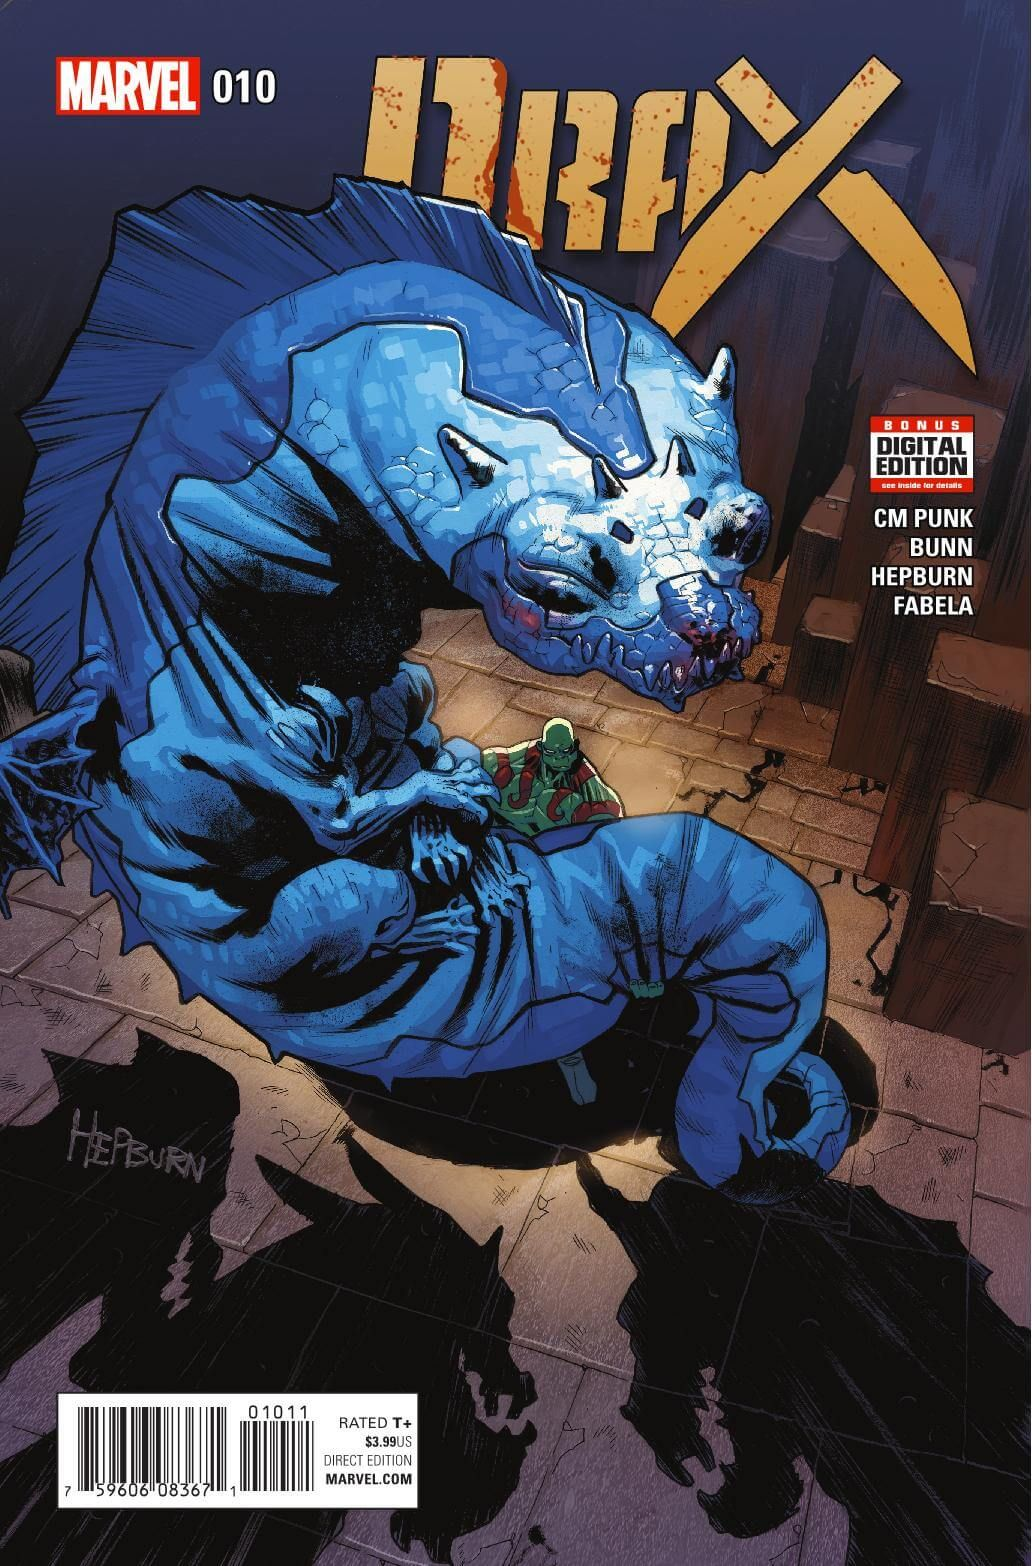 Preview: Drax #10, Story: Cullen Bunn & C.M. Punk Art: Scott Hepburn Cover: Scott Hepburn Publisher: Marvel Publication Date: August 24th, 2016 Price: $3.99  ...,  #All-Comic #All-ComicPreviews #C.M.Punk #Comics #CullenBunn #Drax #Marvel #previews #ScottHepburn